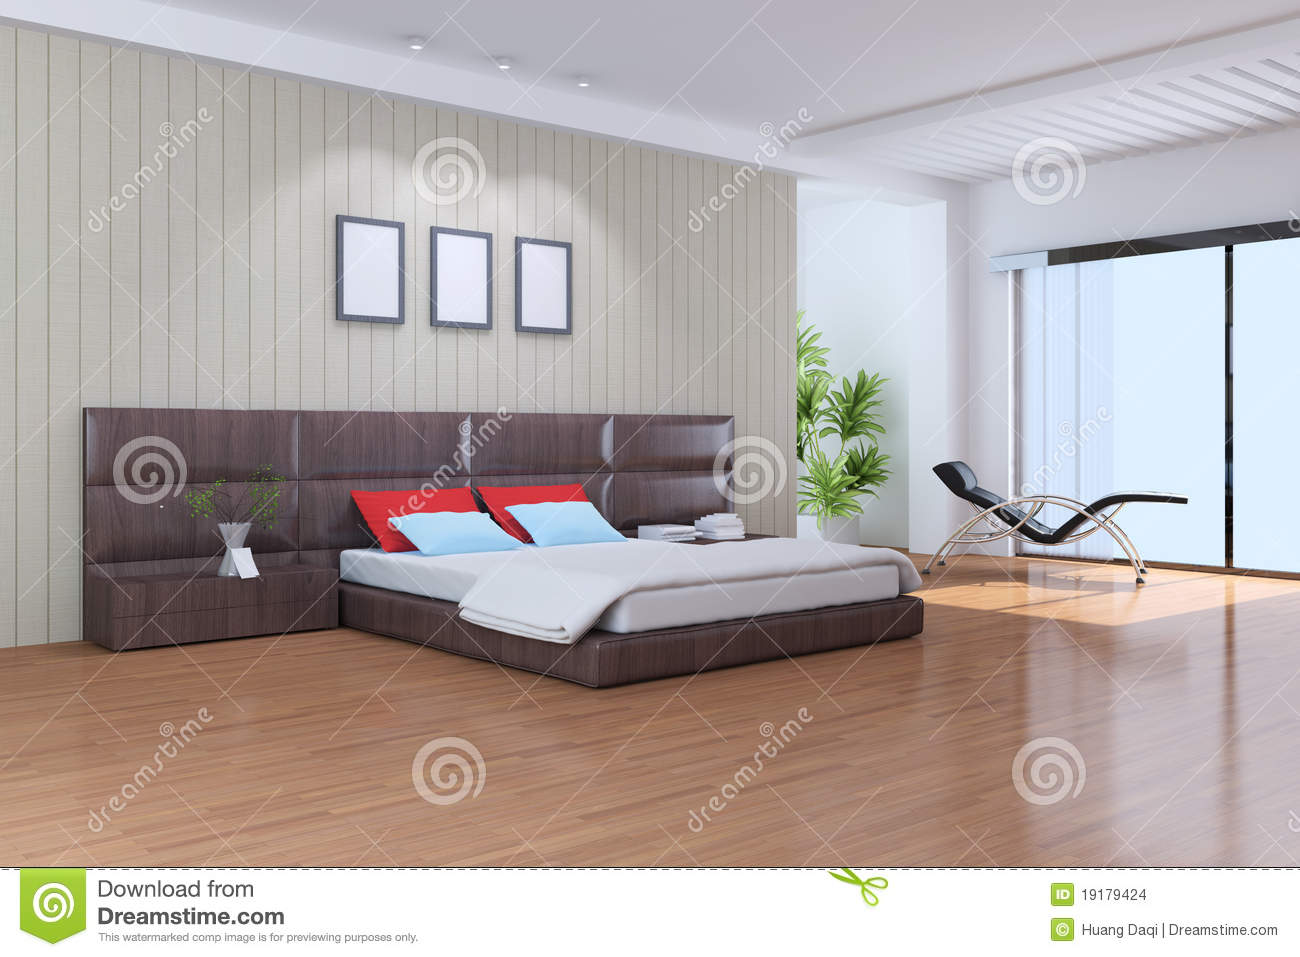 Chambre Coucher Moderne Images Stock Image 19179424